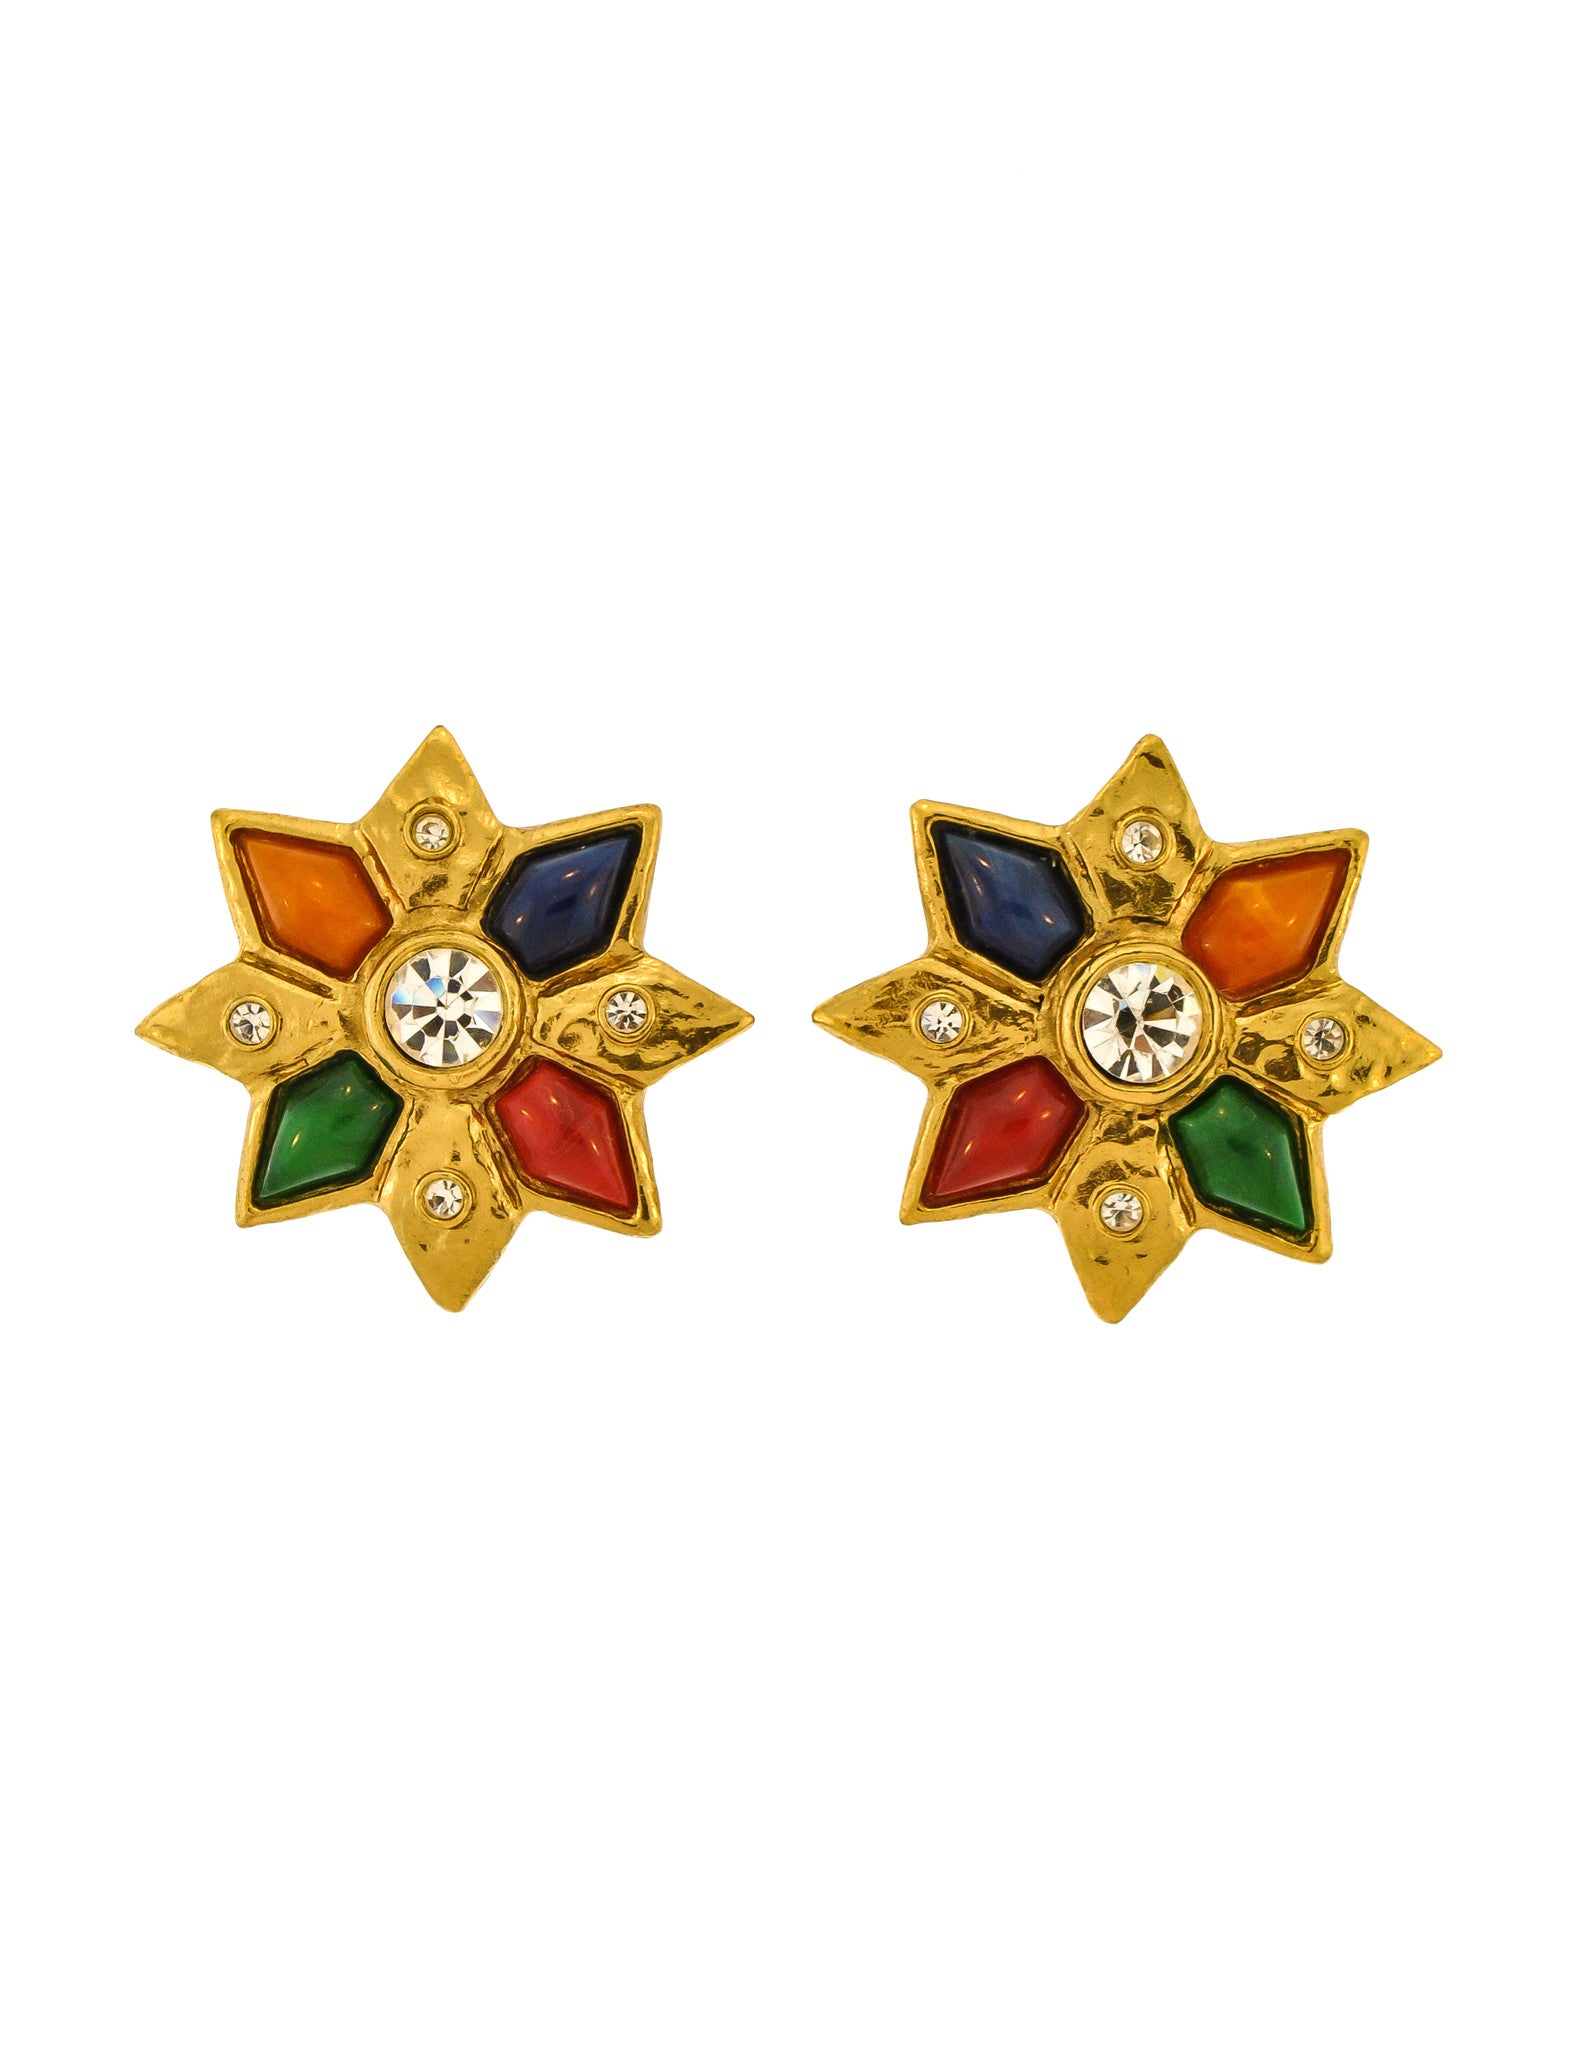 YSL Vintage Multicolor Gold Rhinestone Star Earrings - Amarcord Vintage Fashion  - 1